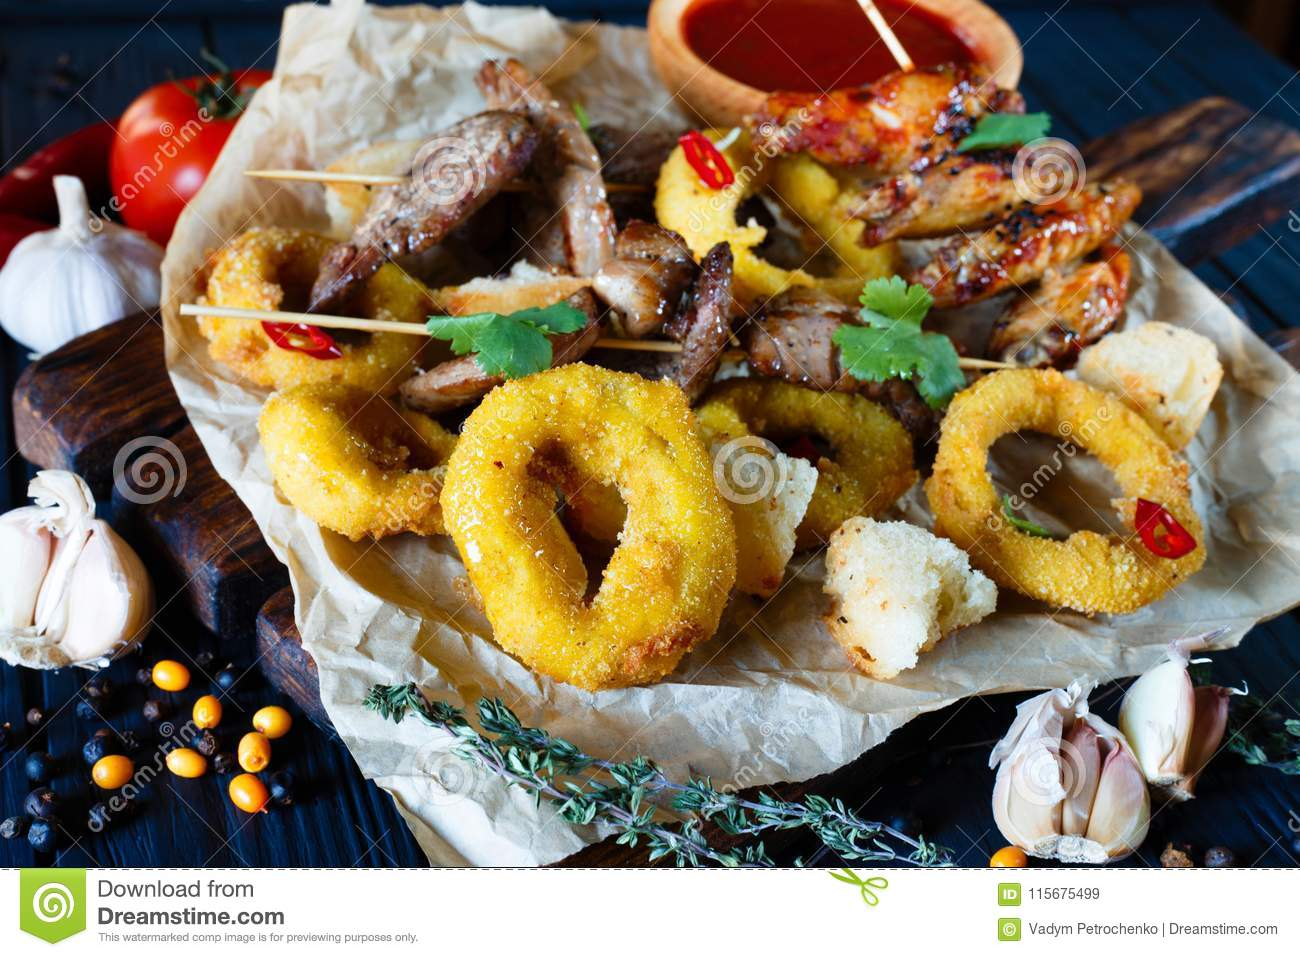 Grilled Meats Assortment, Onion Rings In Breadcrumbs, Rusks Deco ...